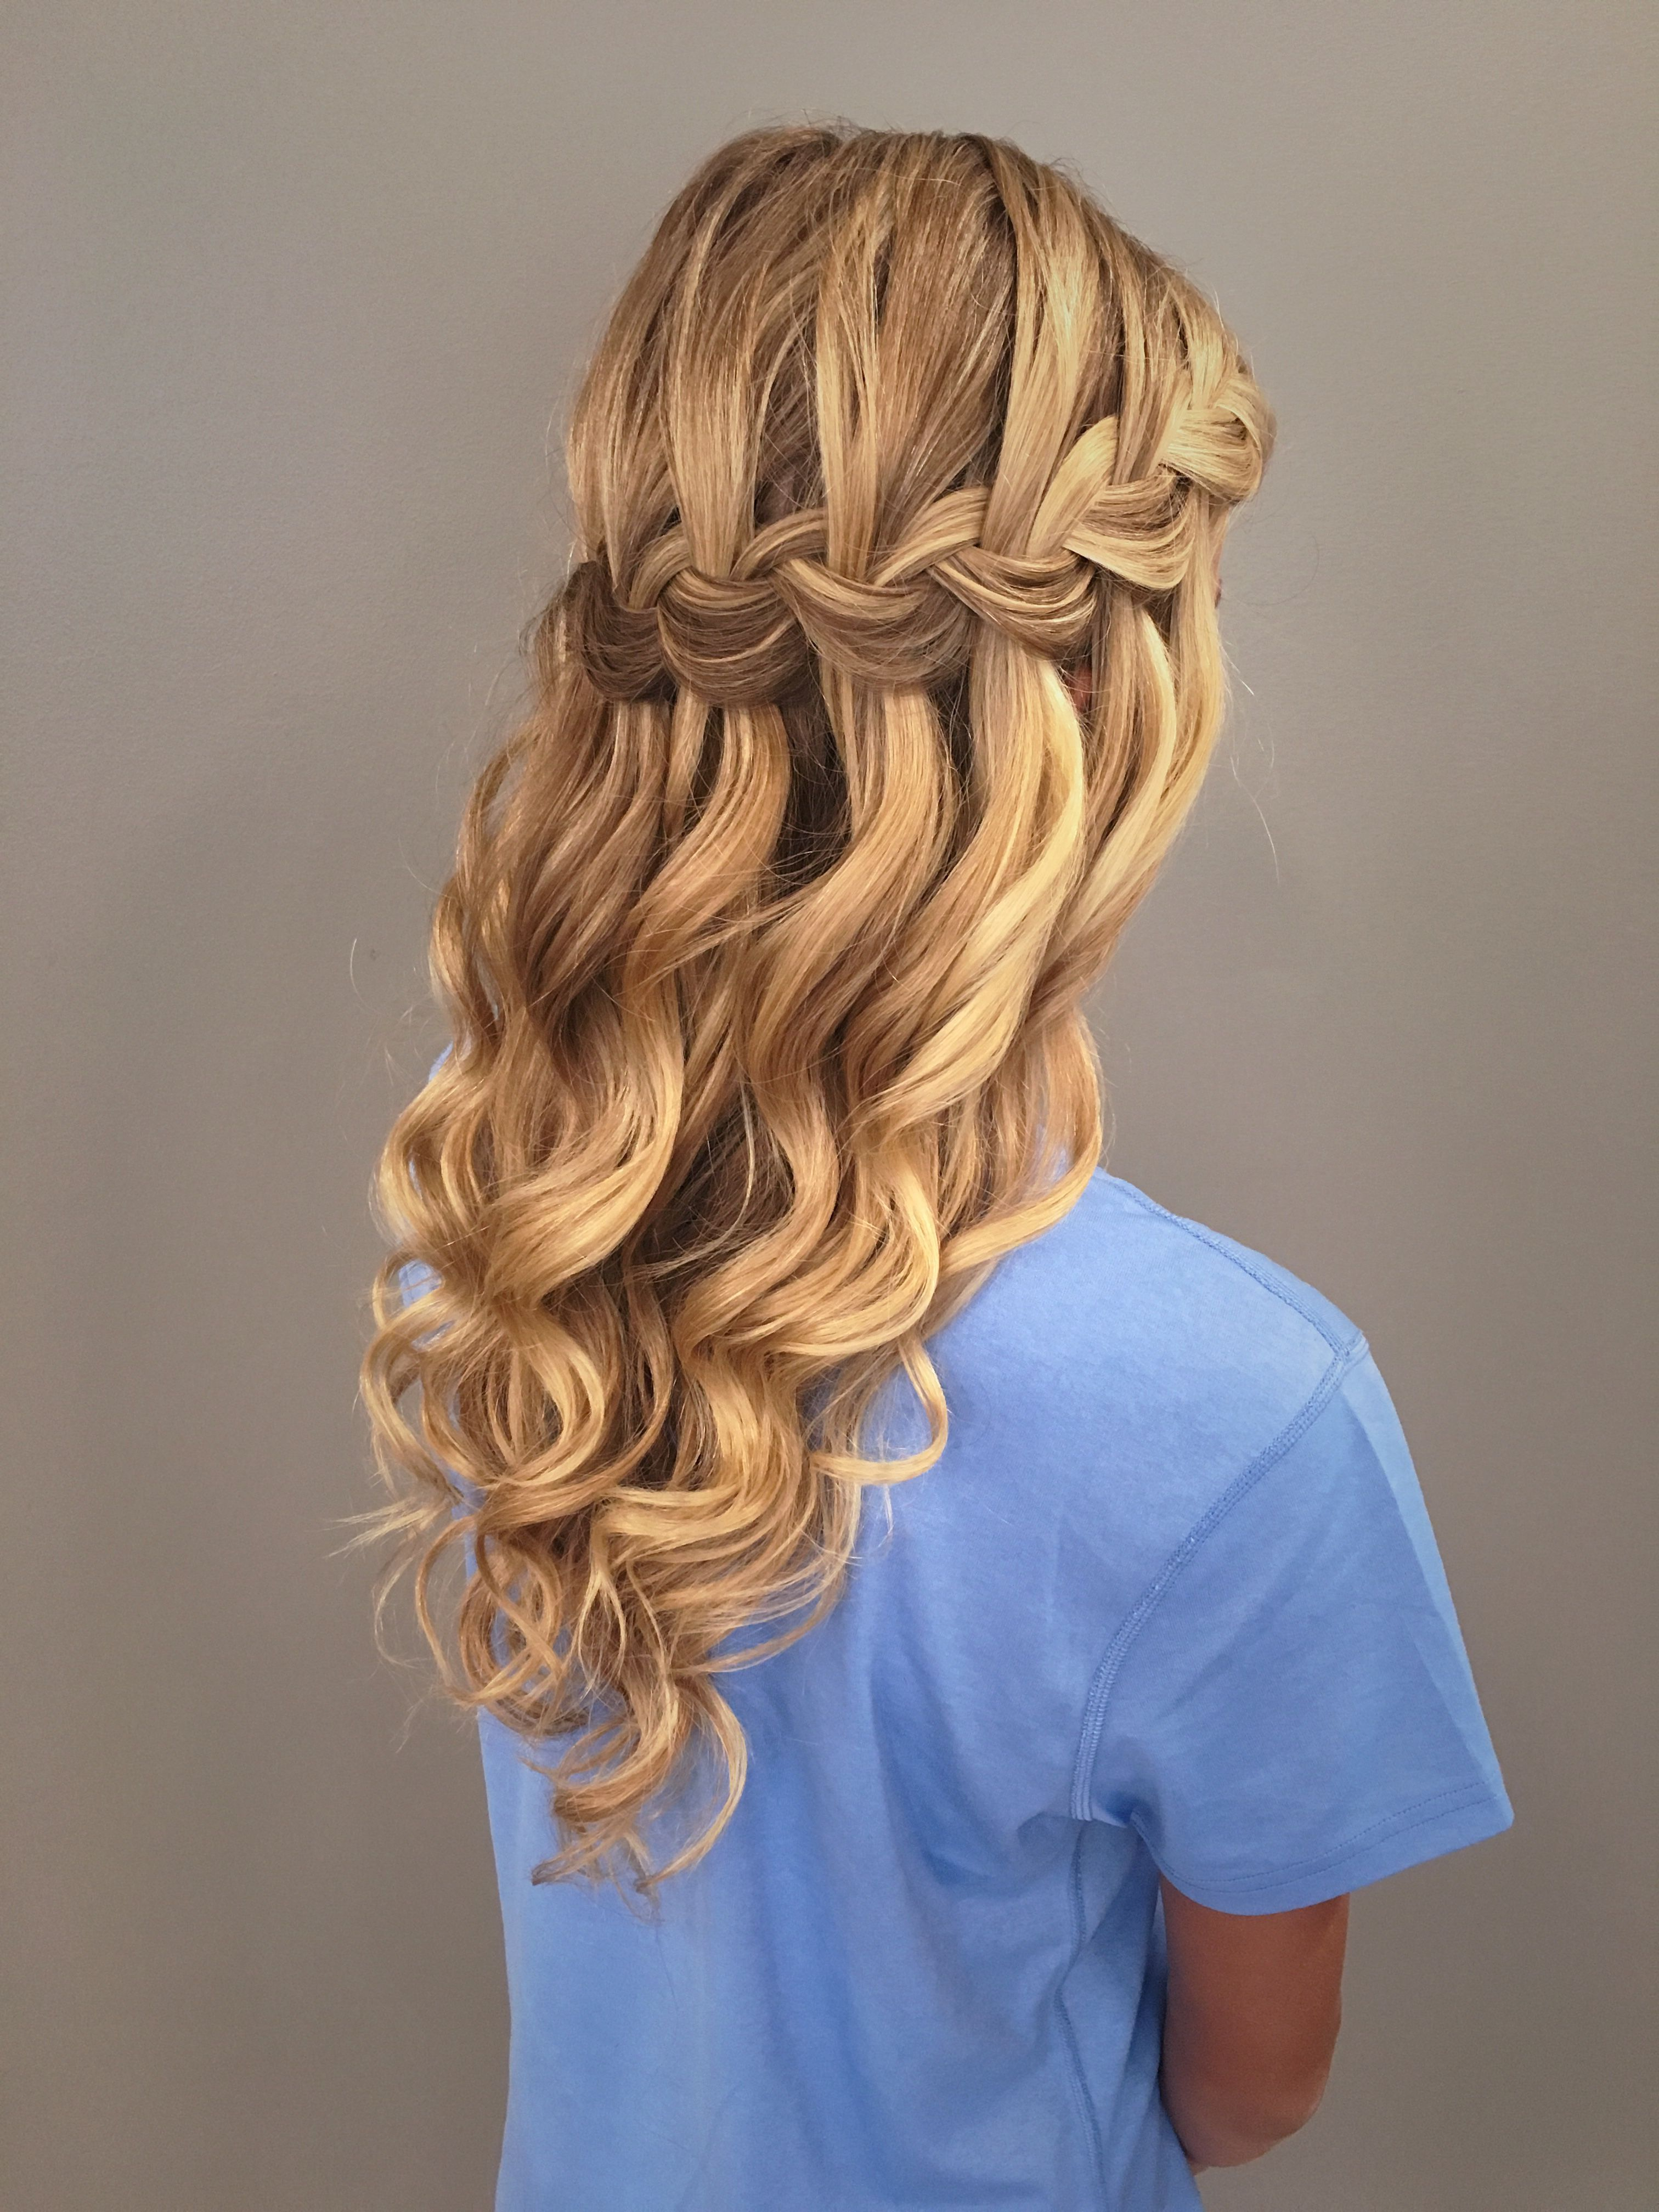 waterfall braid with mermaid waves! great bridal, prom, or